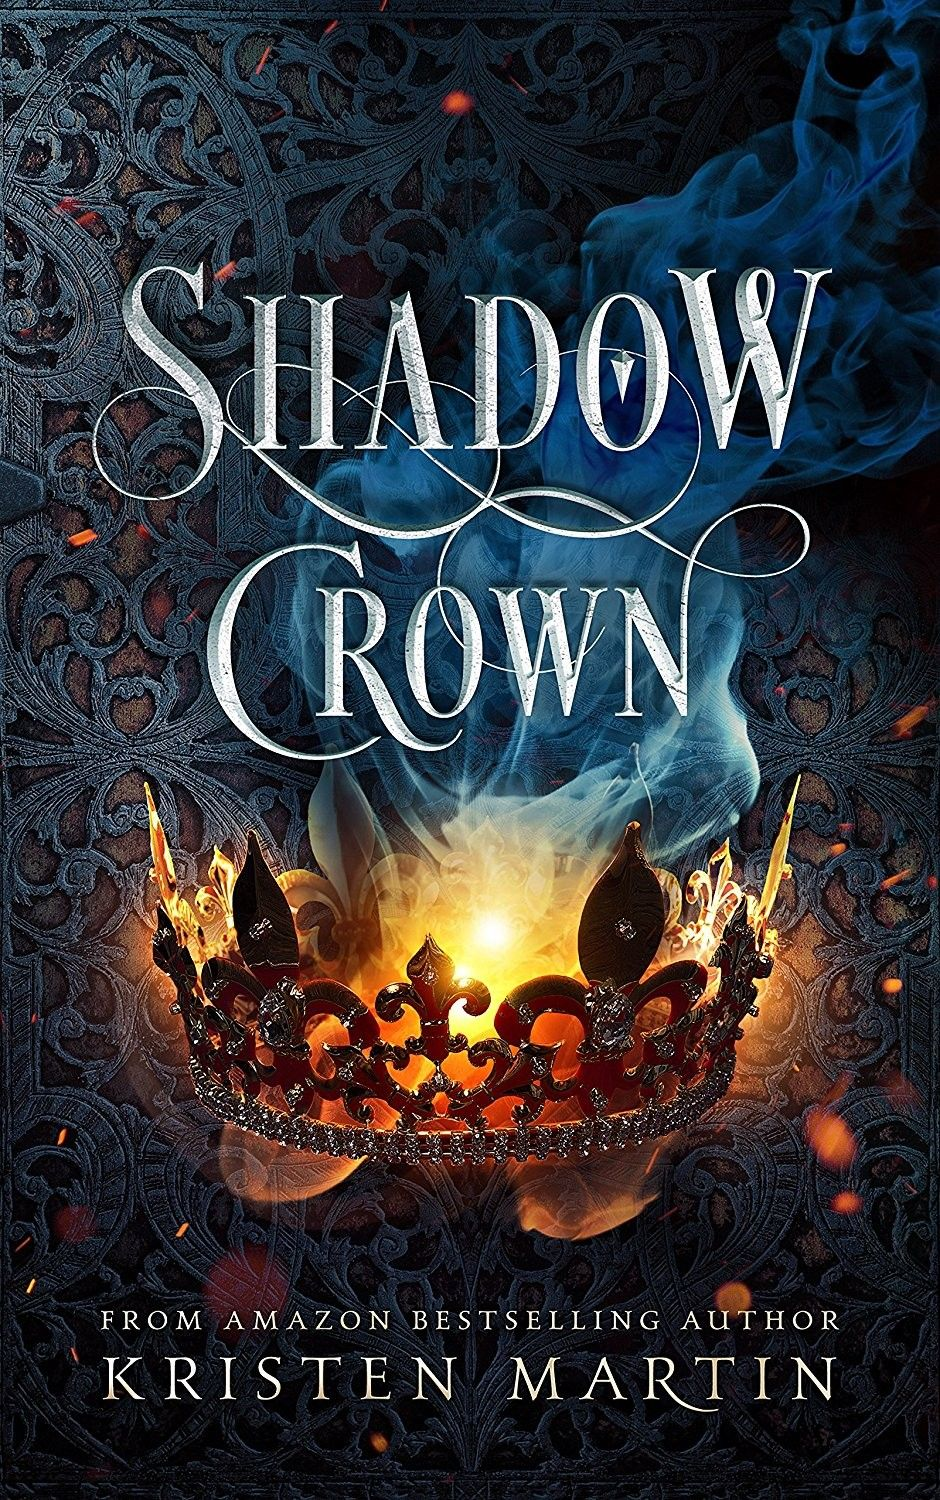 Shadow Crown Have The Lacey Design In The Background Fade Everything Itno This Texture Fantasy Books To Read Books To Read Books